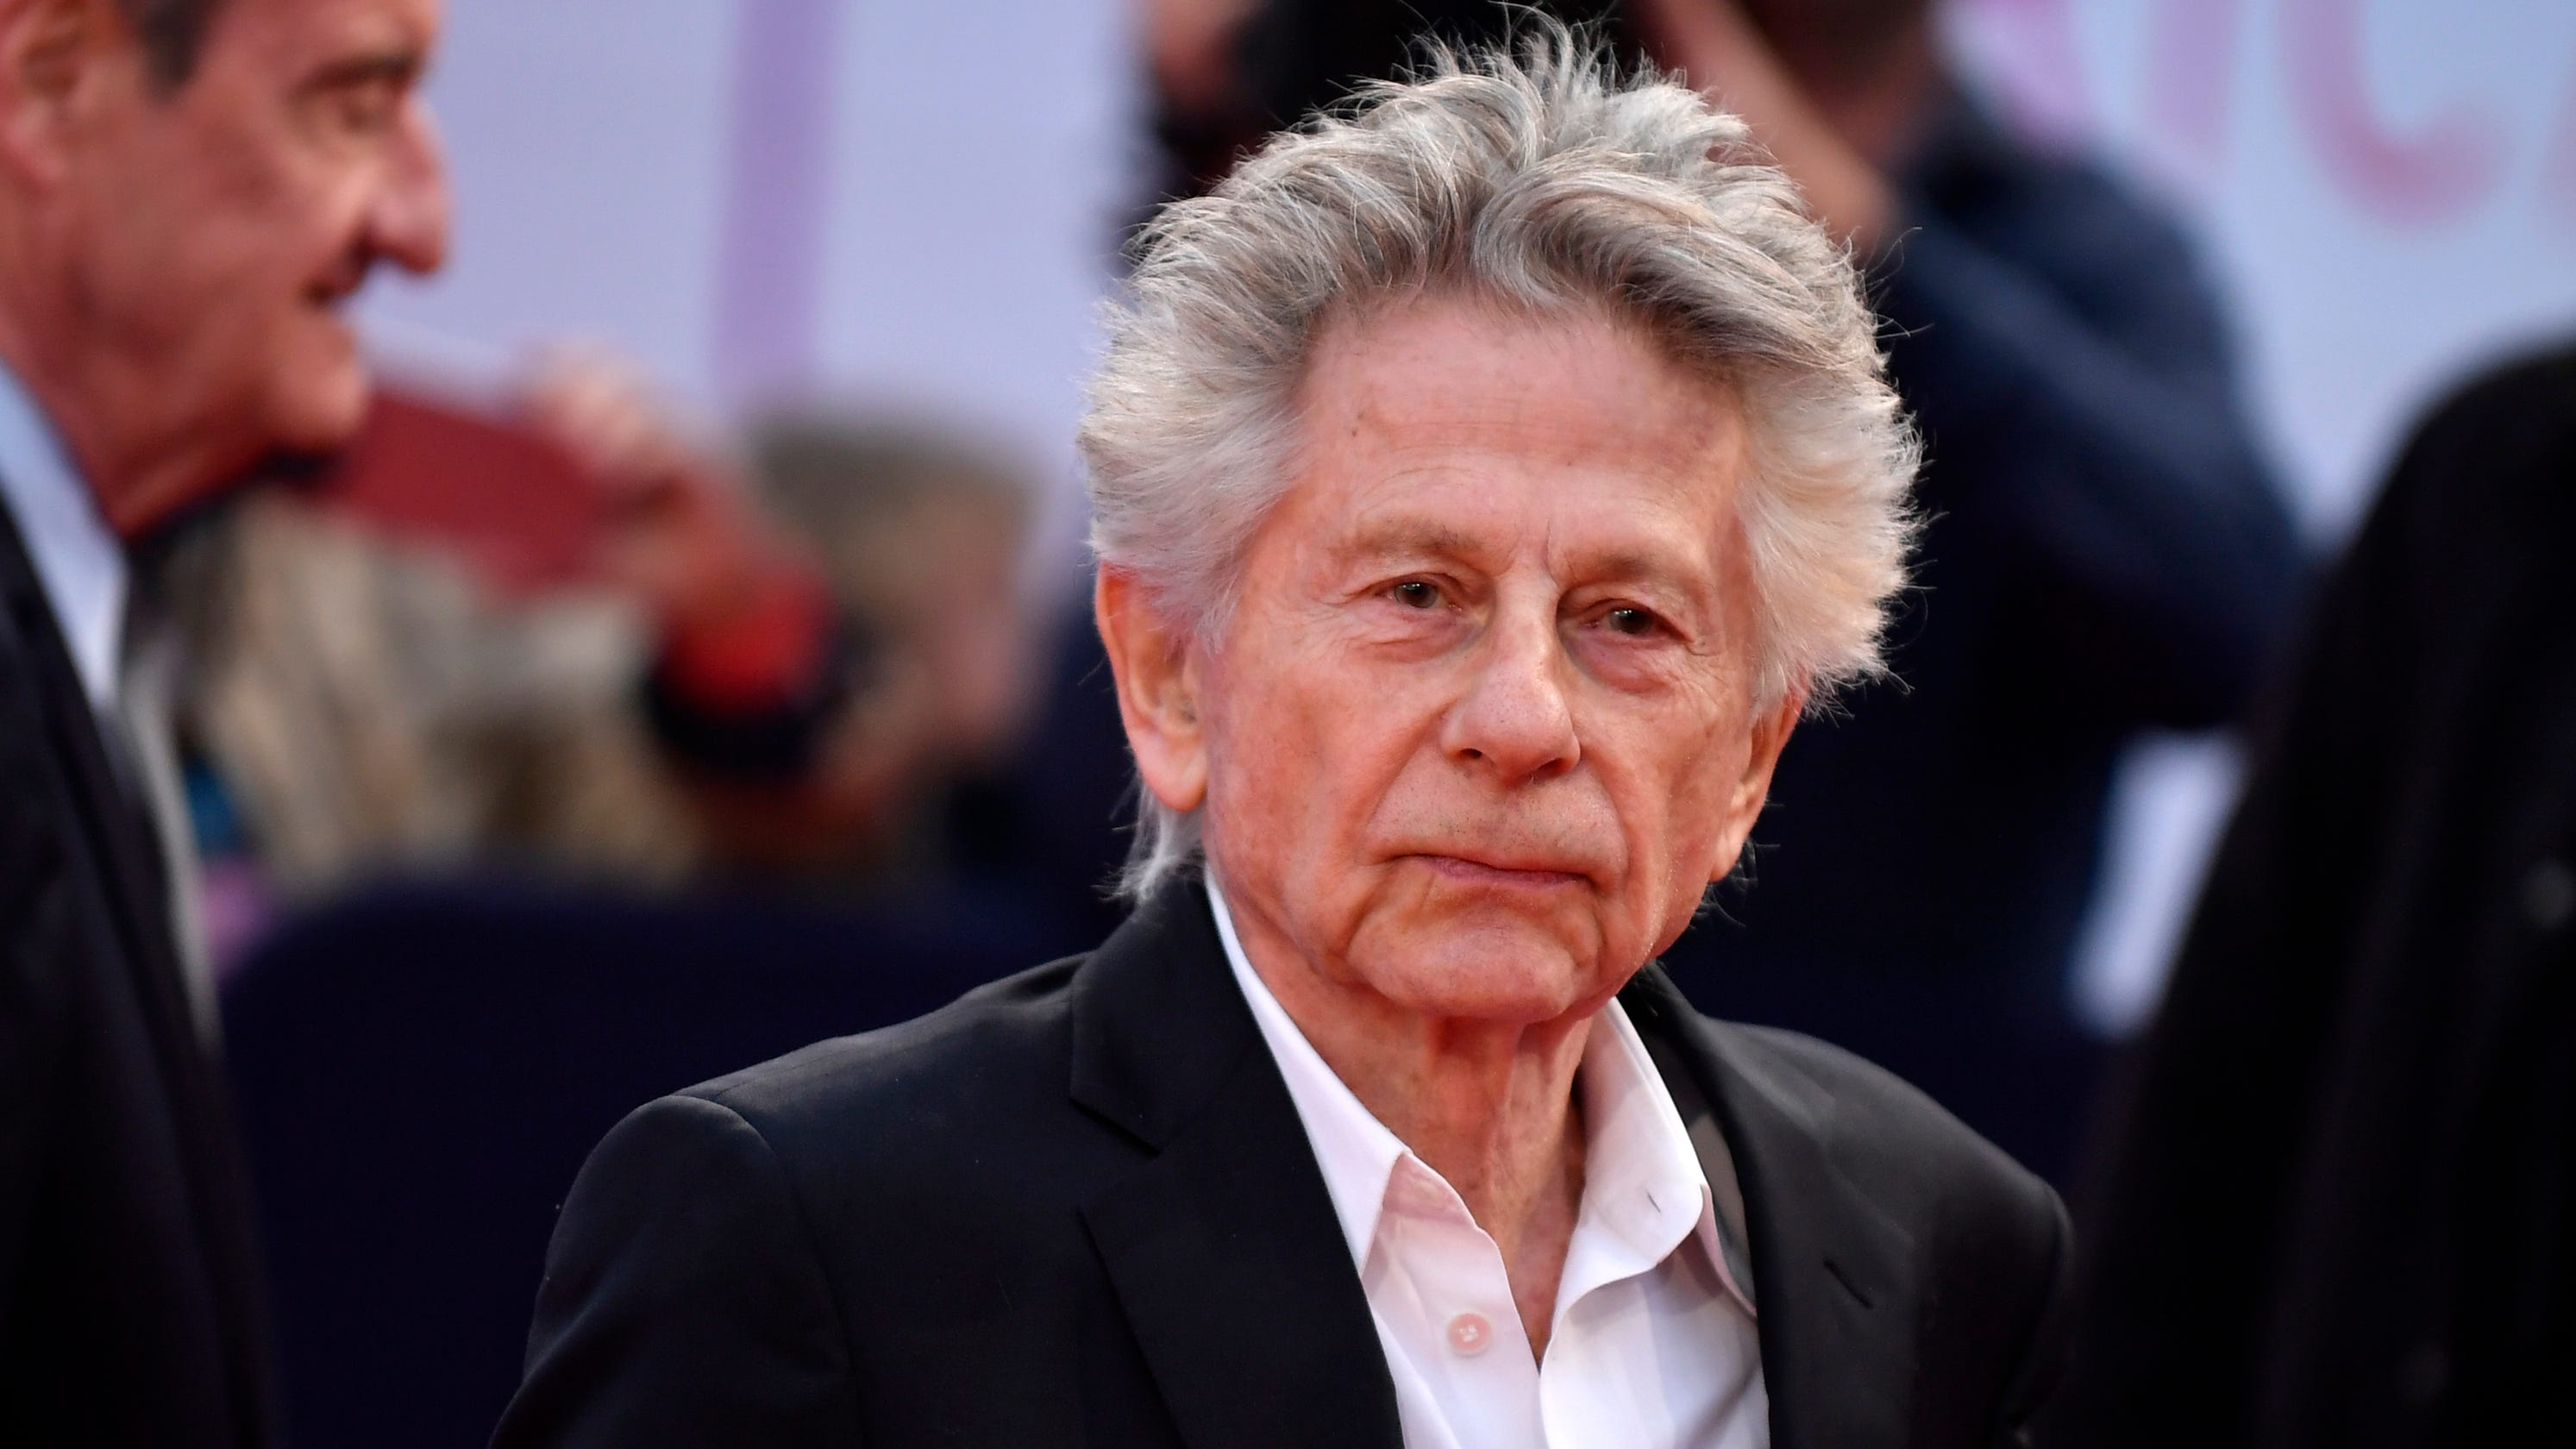 French woman accuses Roman Polanski of raping her in 1975 when she was 18